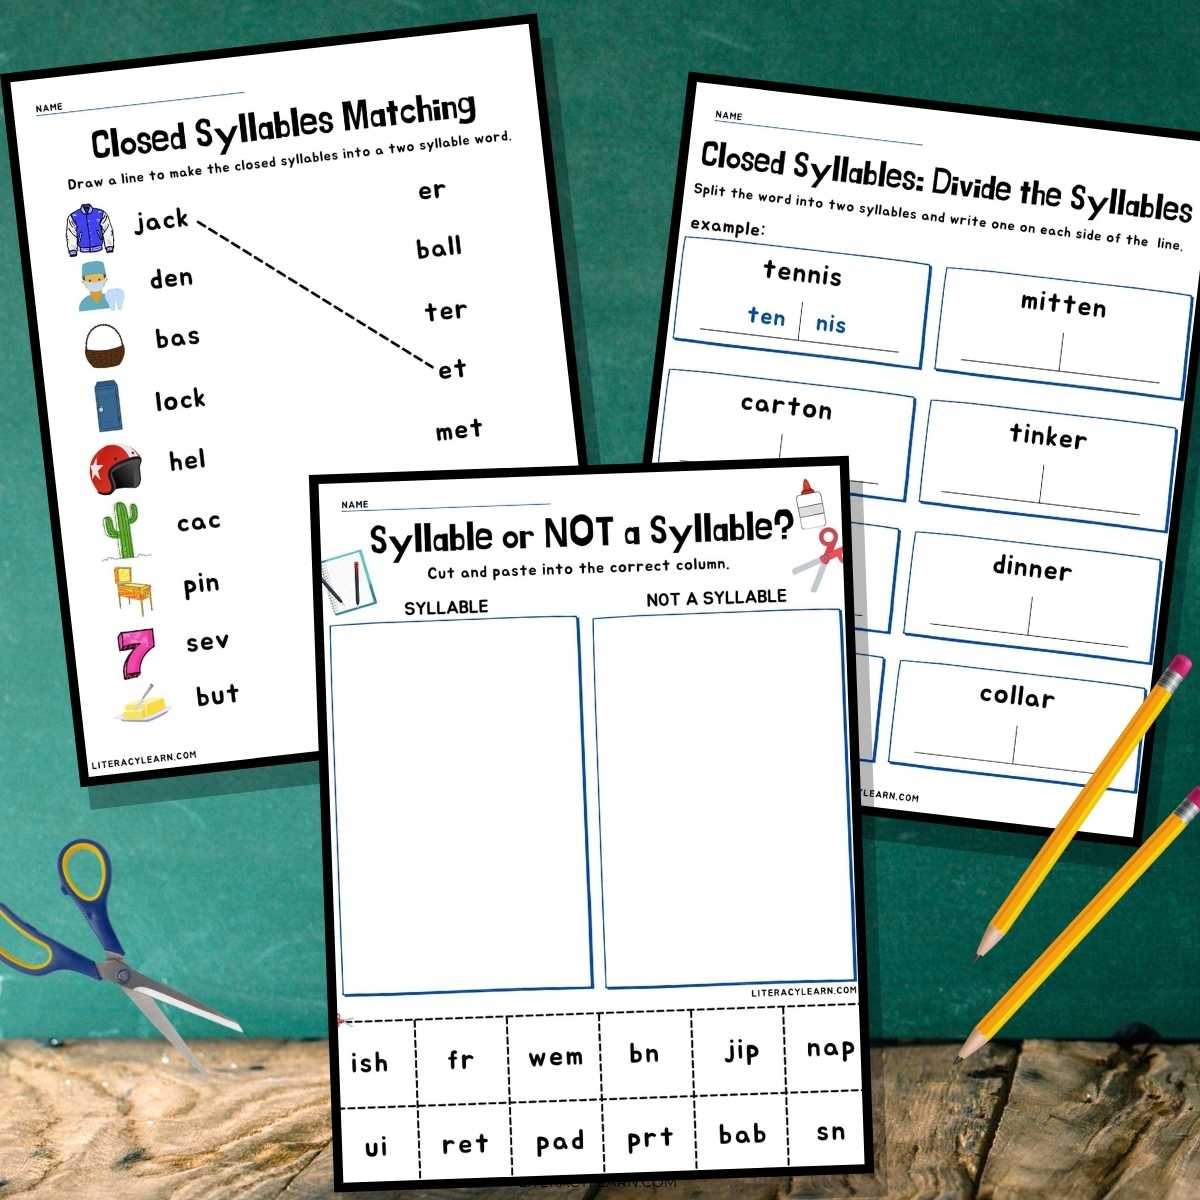 Graphic showing three of the closed syllables worksheets beside pencils and a pair of scissors.